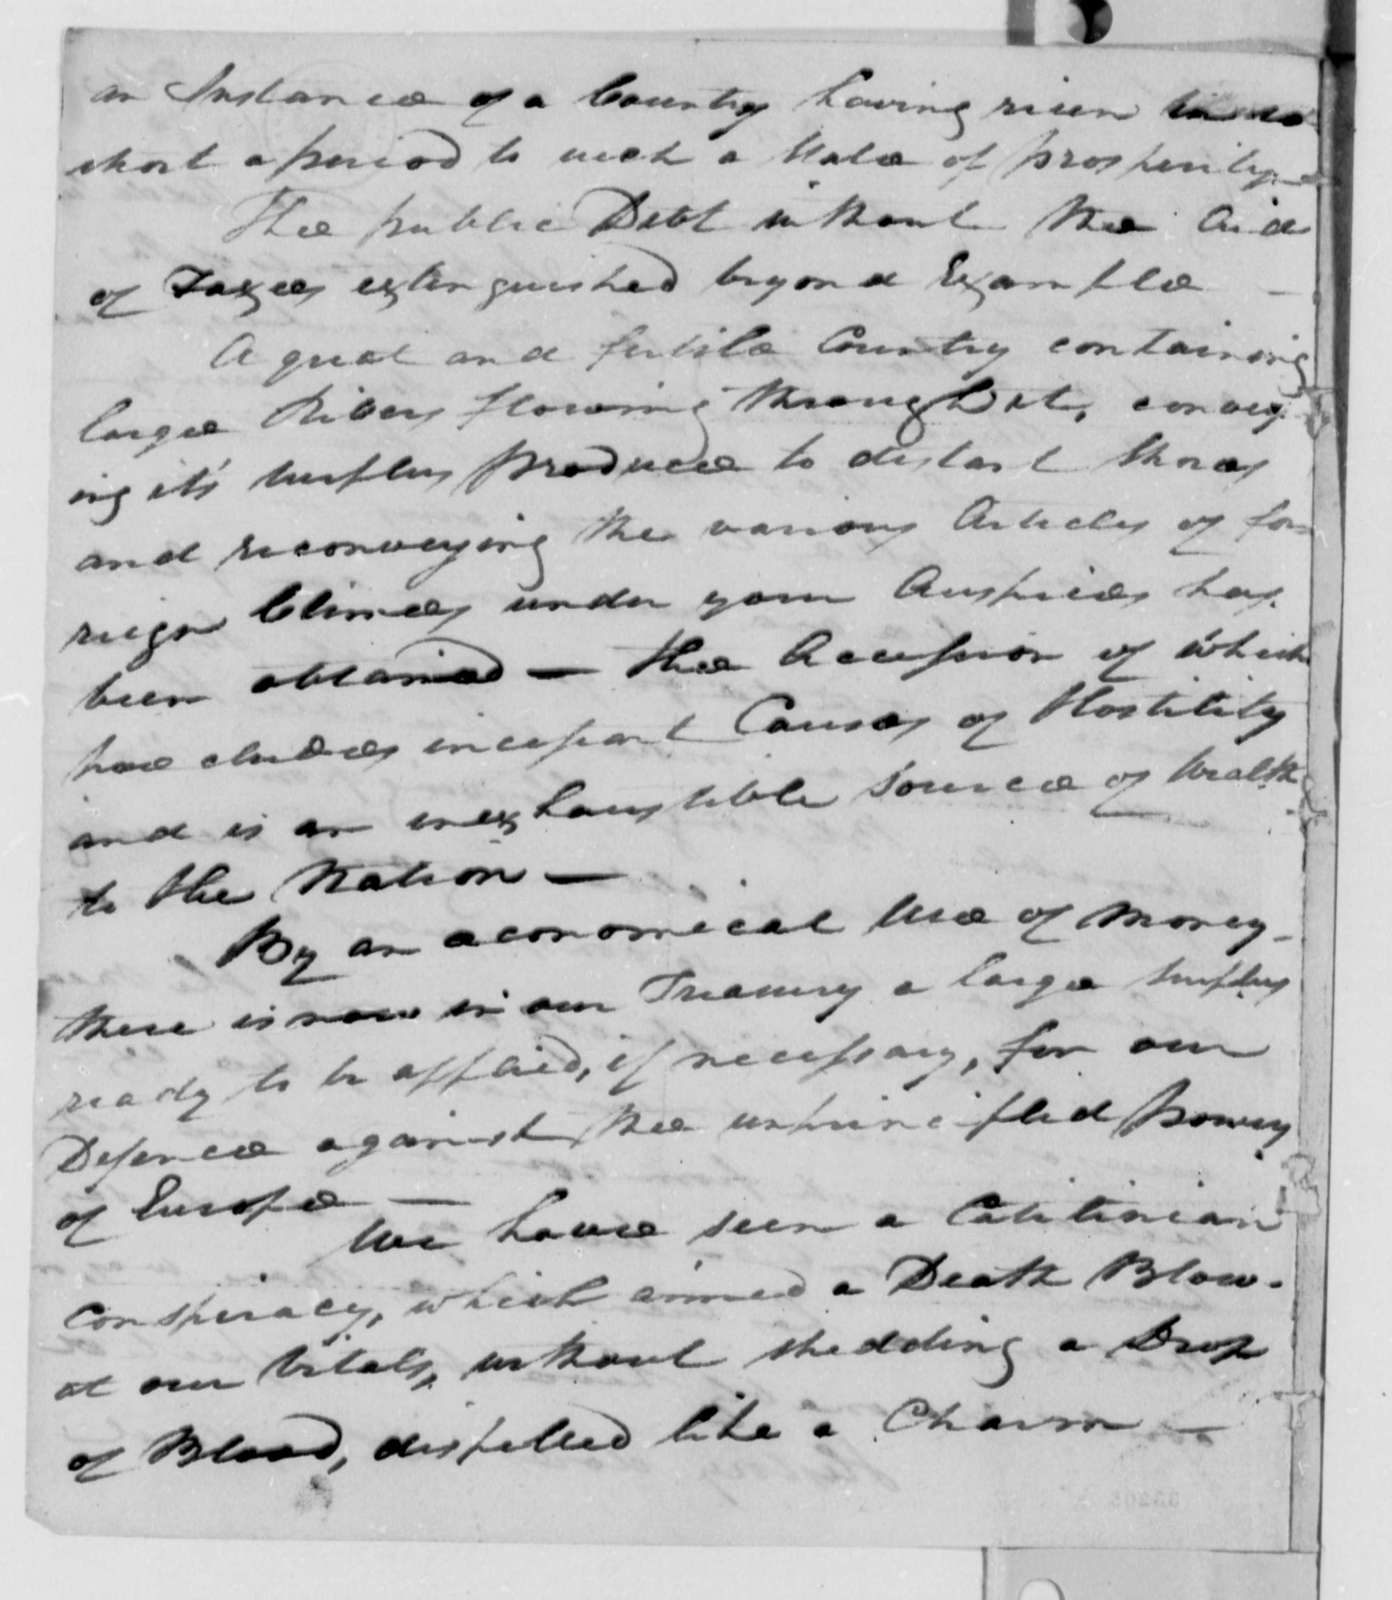 Queen Anne County, Maryland, Republicans to Thomas Jefferson, March 18, 1809